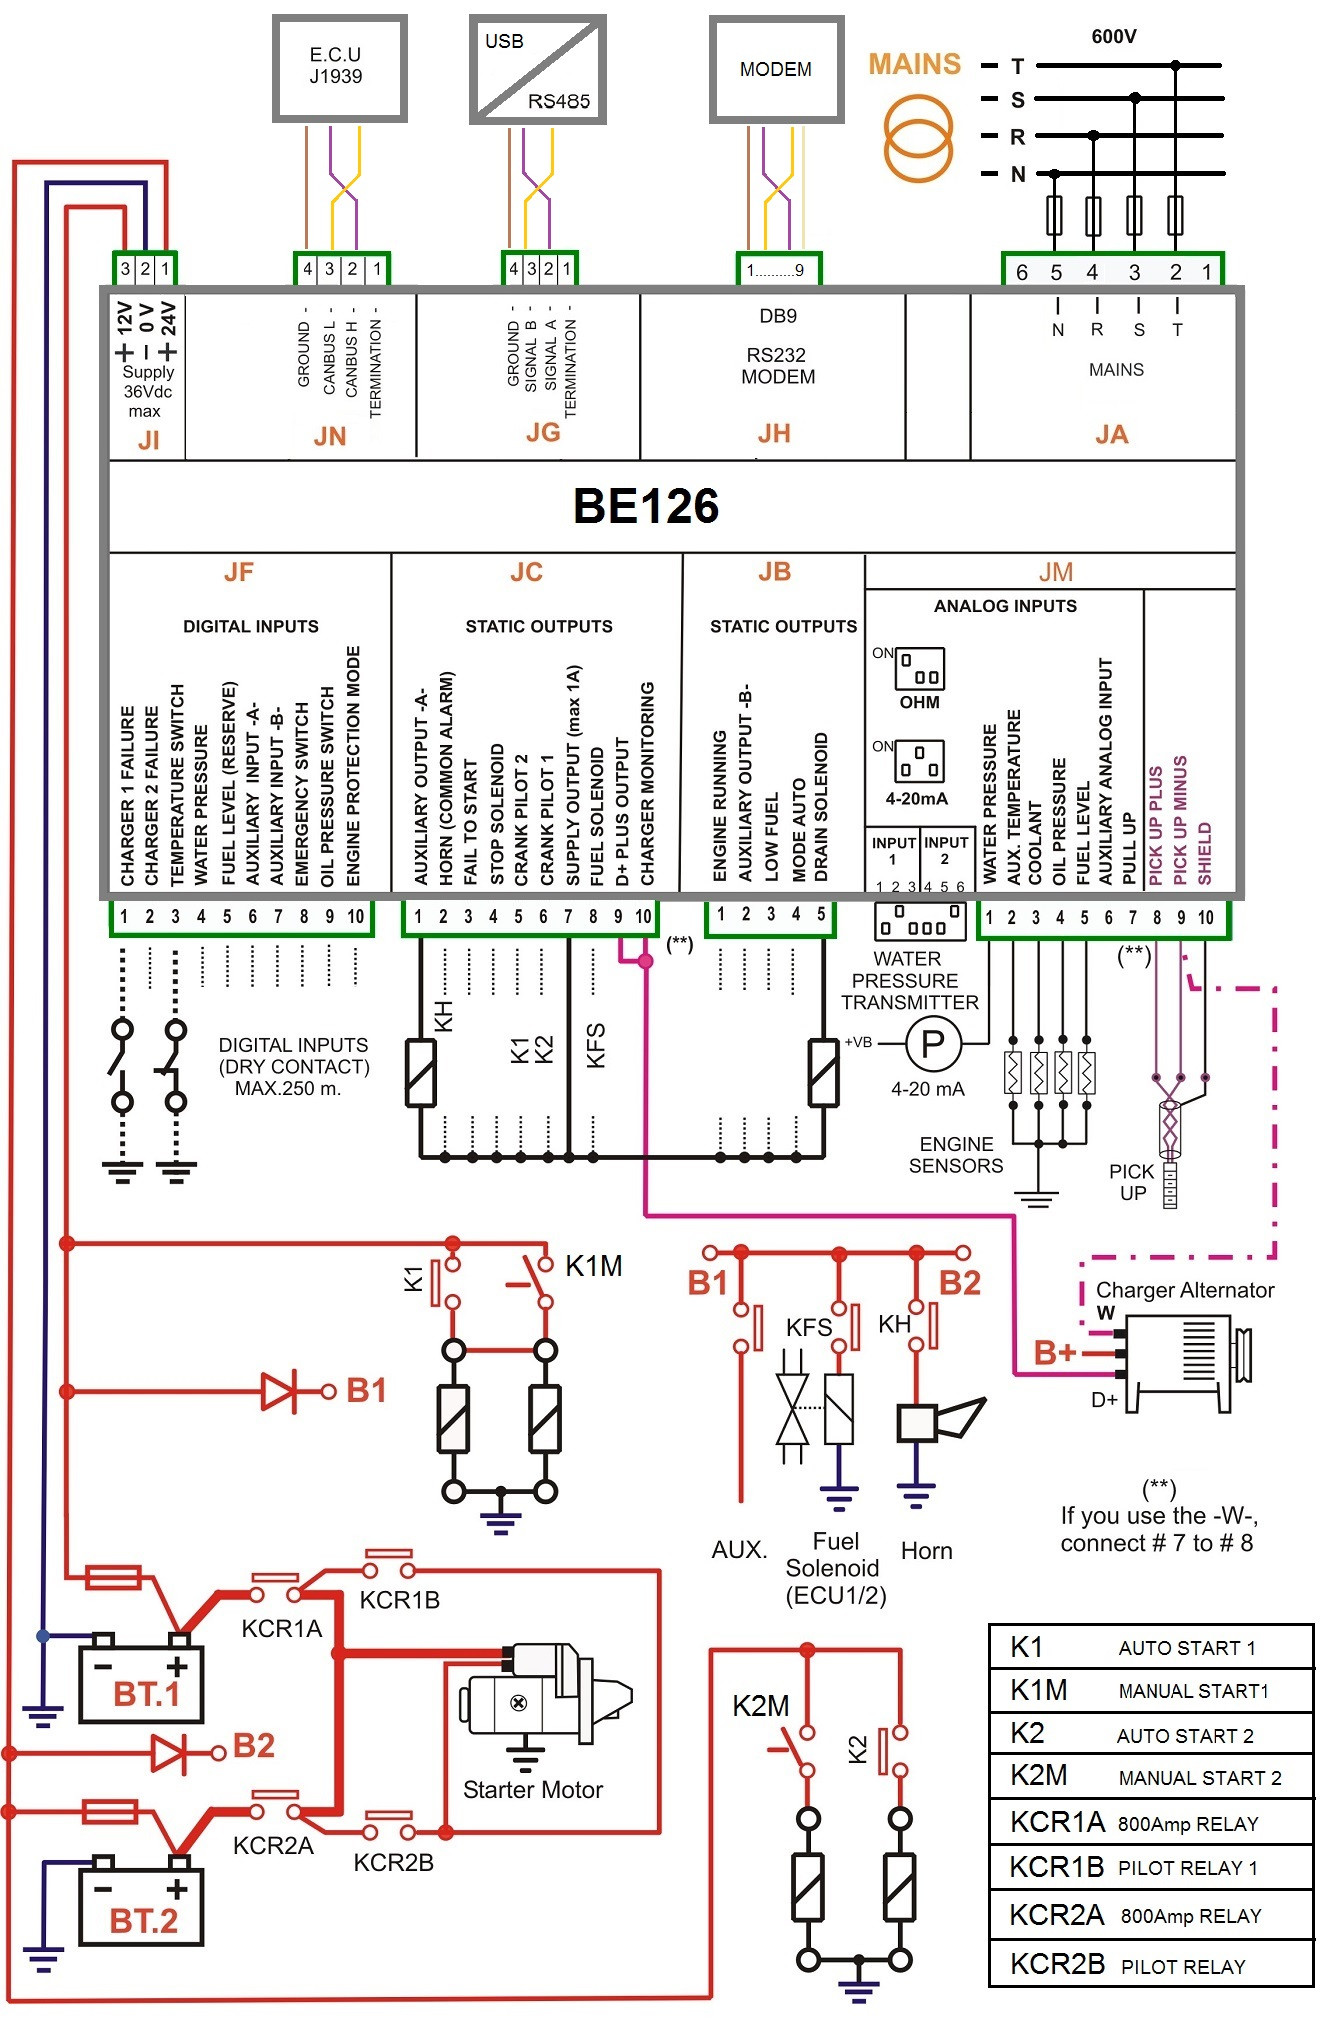 NFPA20 fire pump controller wiring diagram 1987 omc co 4 3 wiring diagram omc printable & free download images,Ground Wire Diagram Omc Co